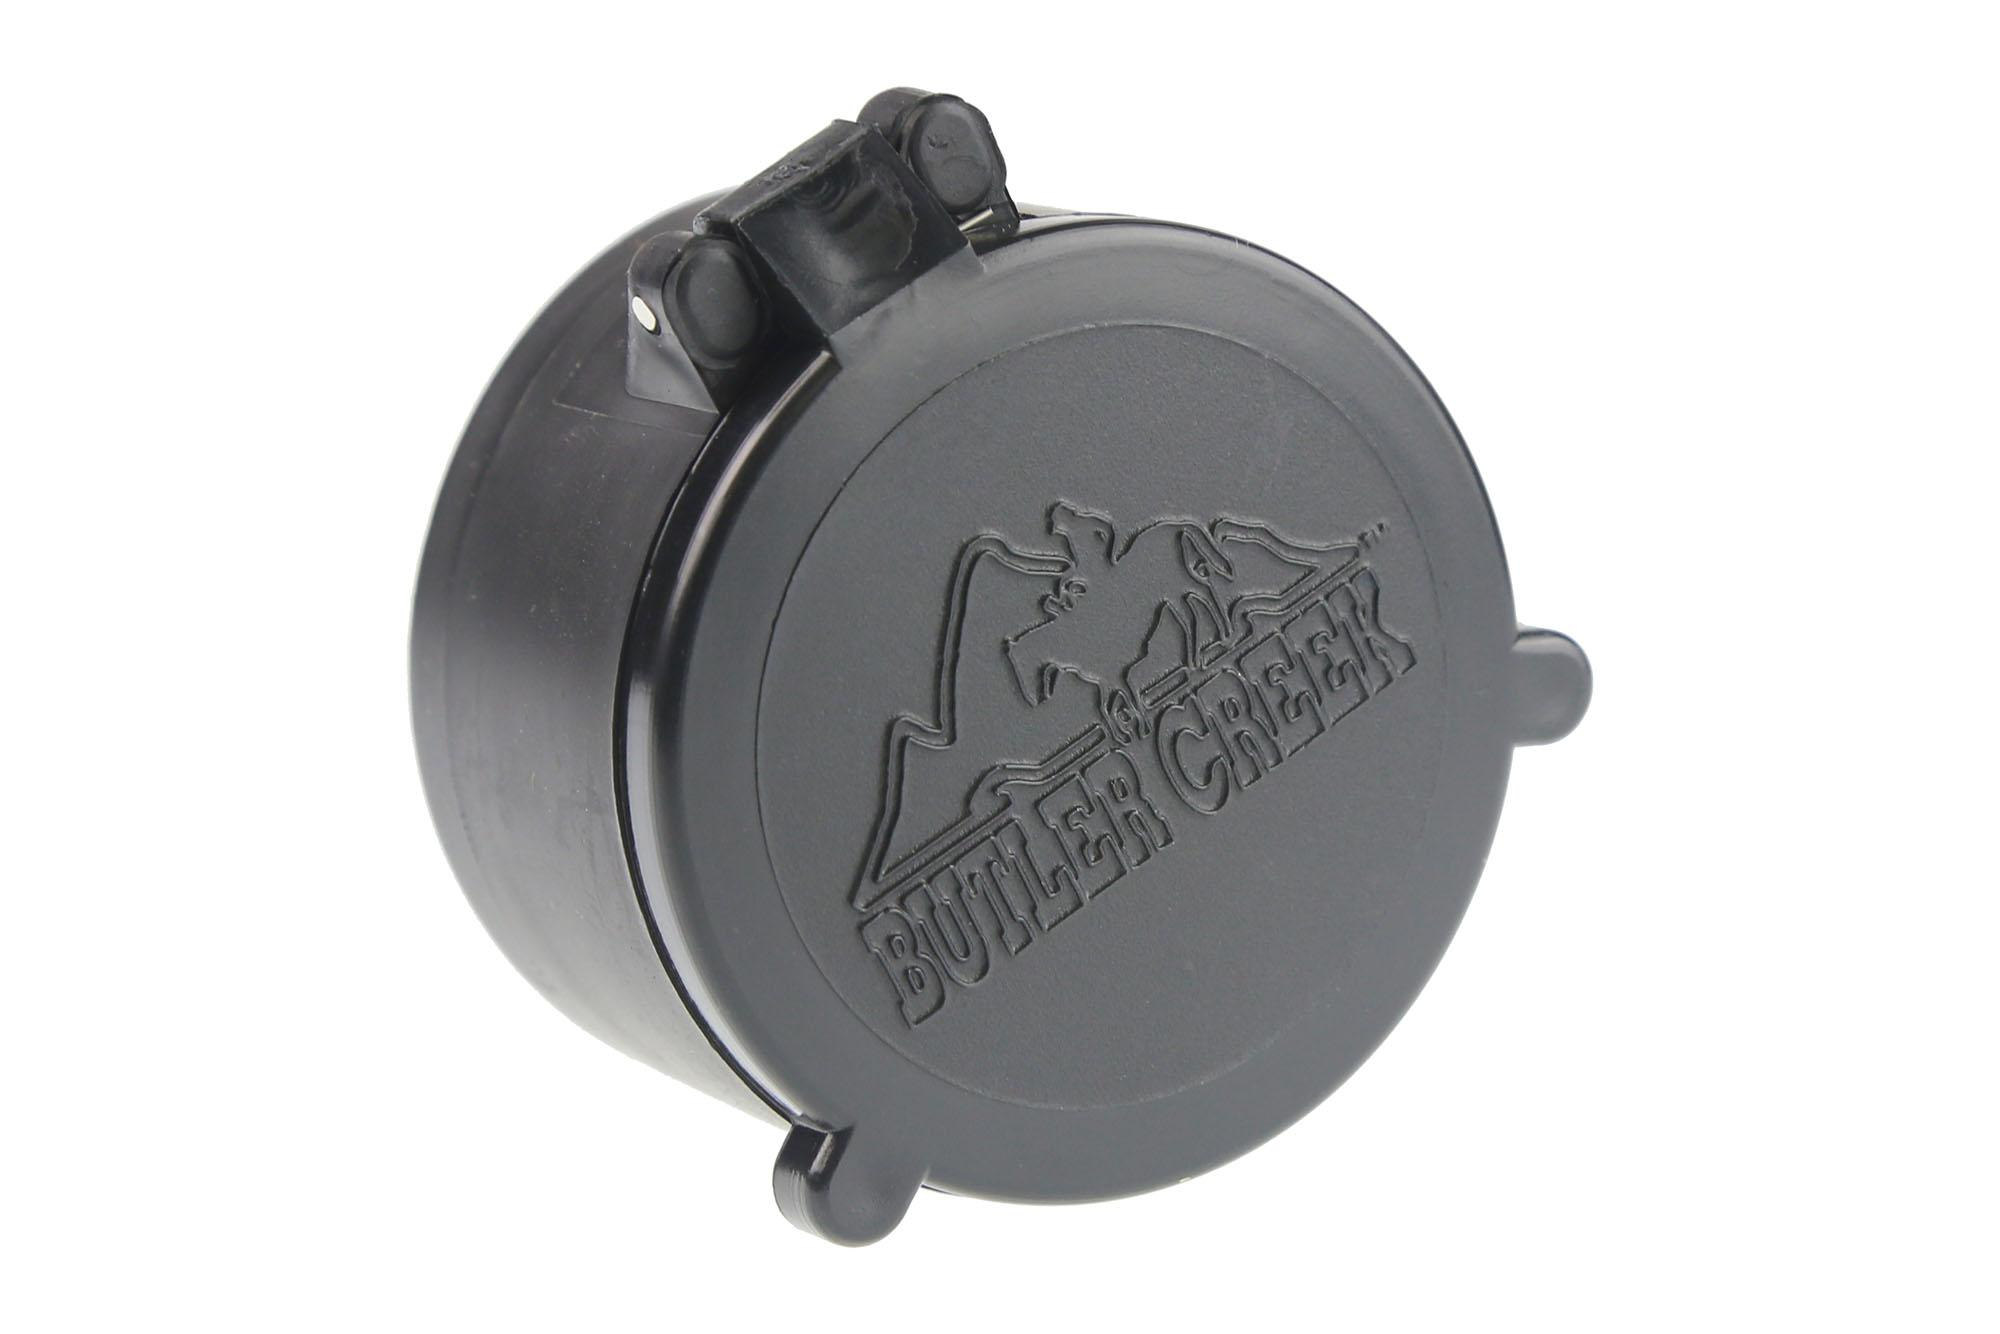 Butler Creek Flip Up Scope Cover 17 Objective